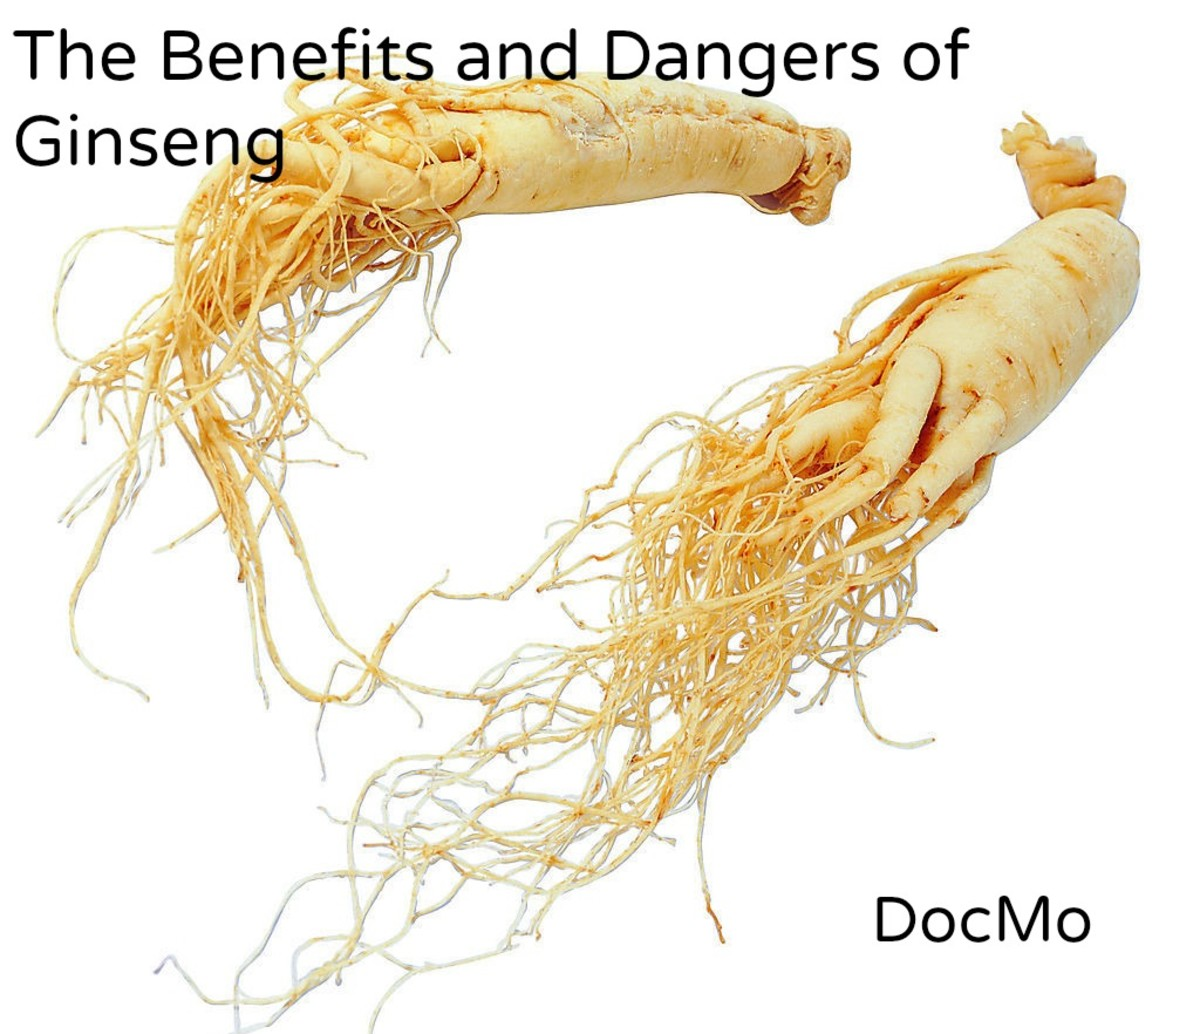 The Benefits and Dangers of Ginseng